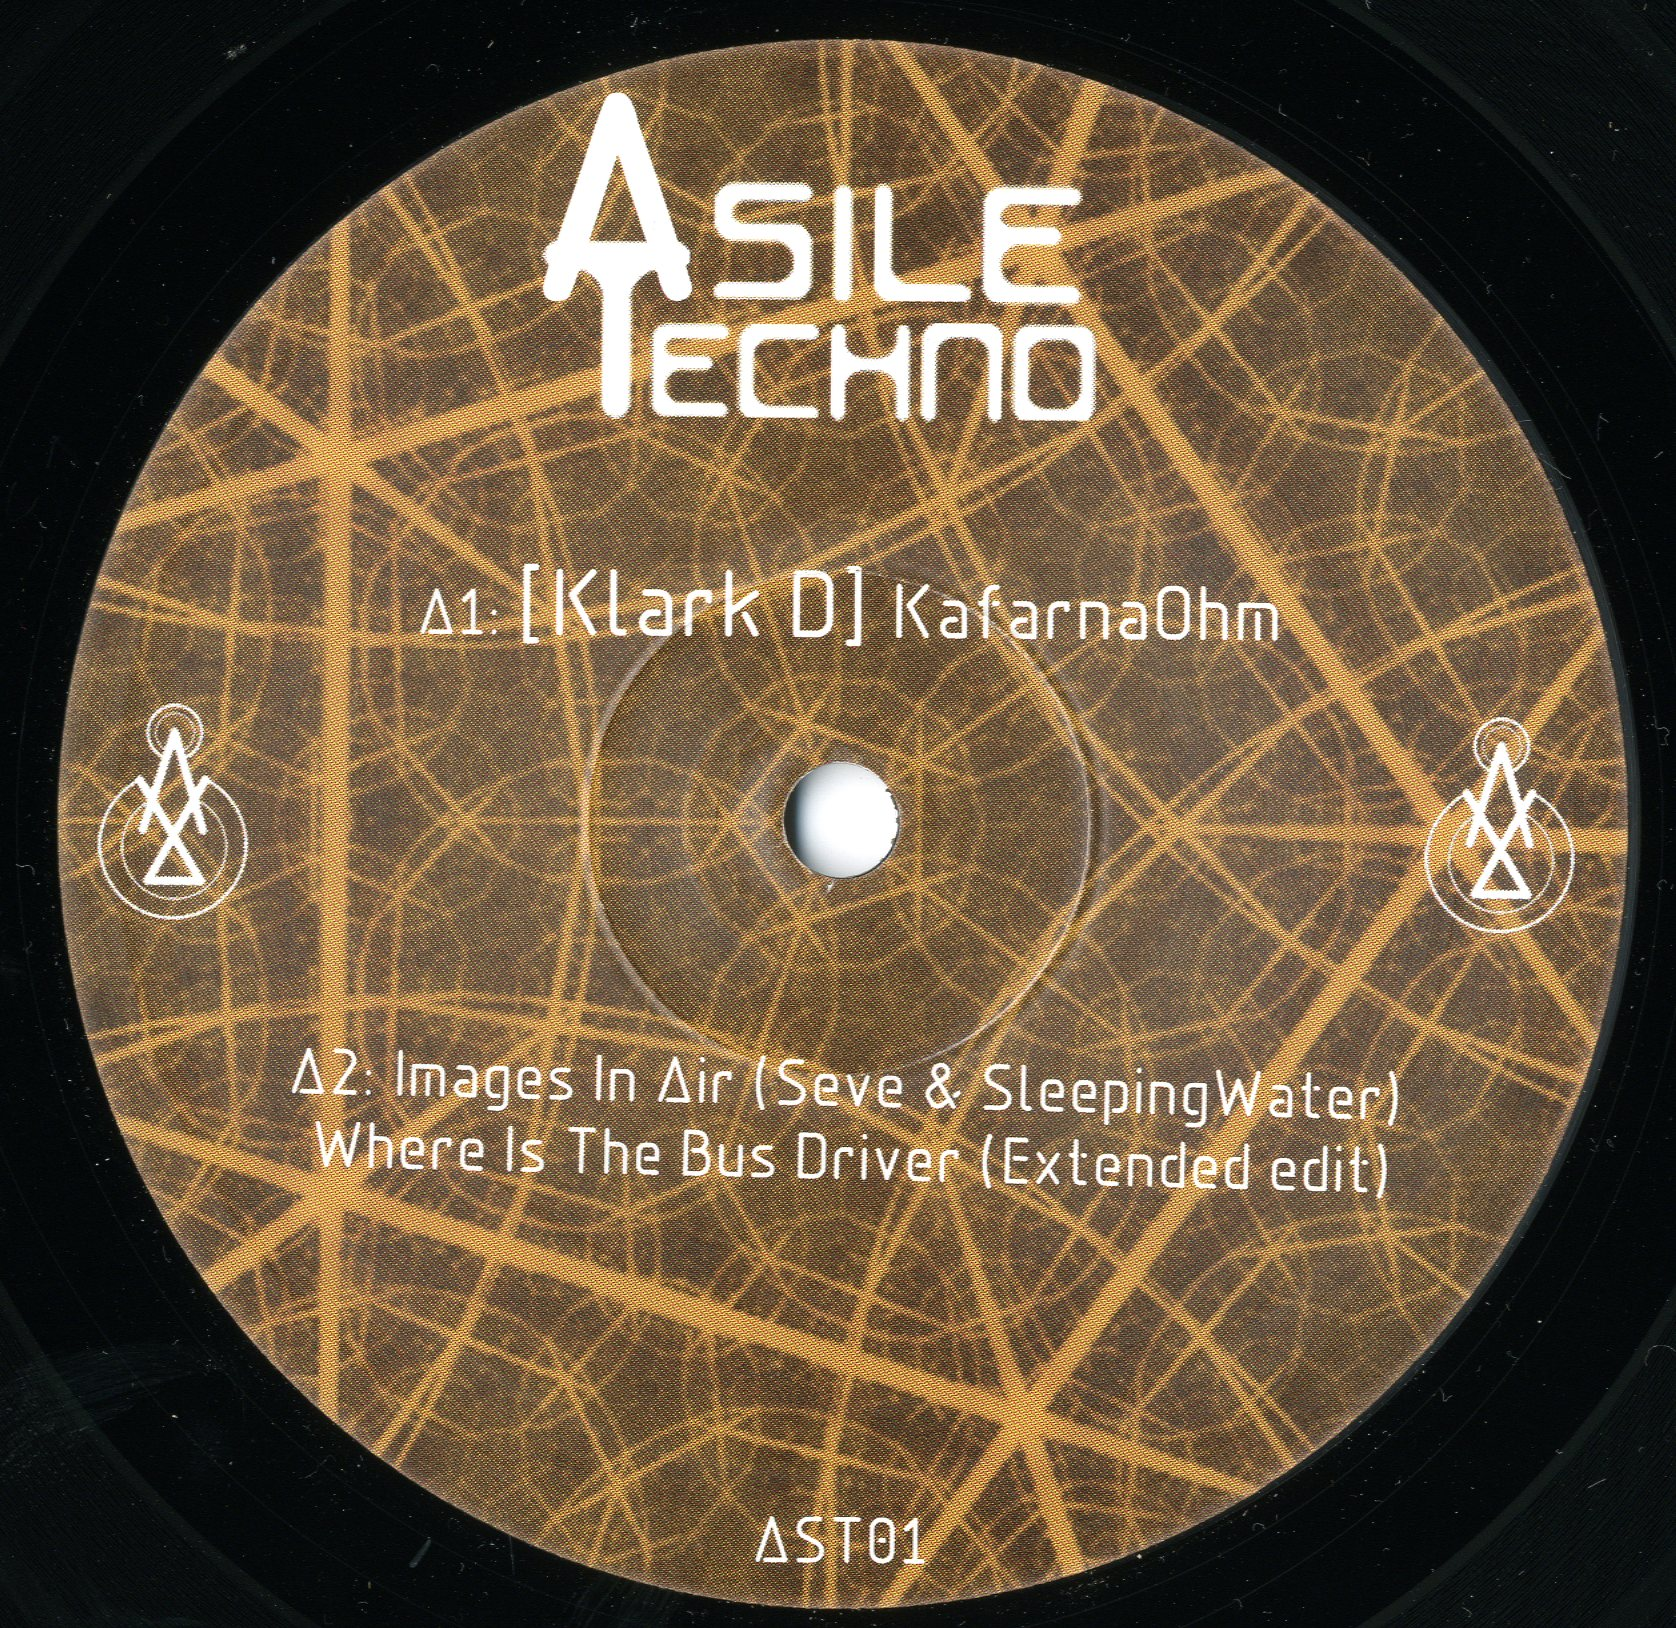 AST01 - ASILE TECHNO - VARIOUS